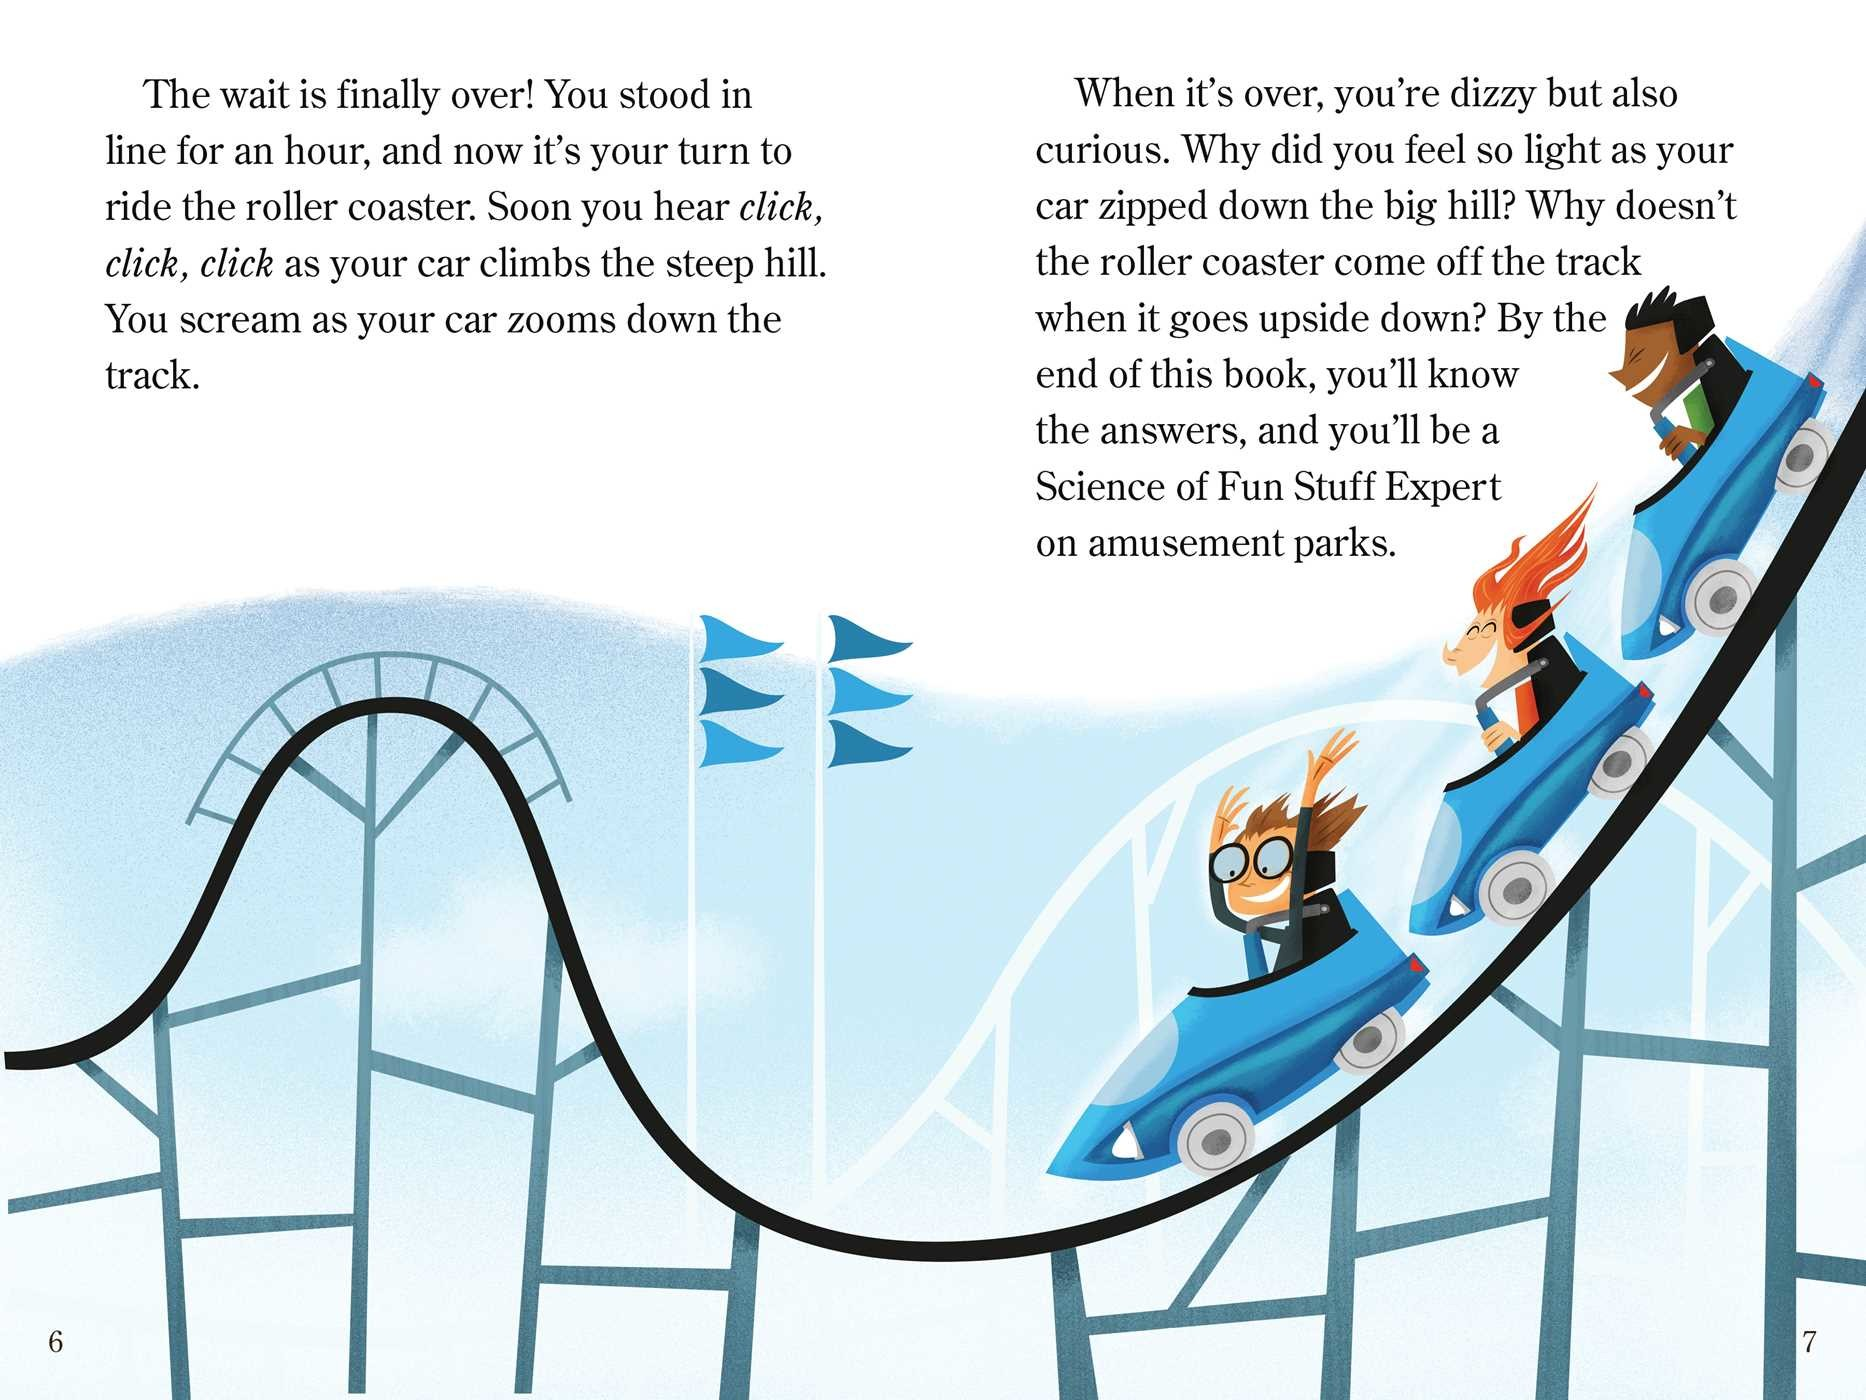 The thrills and chills of amusement parks 9781481428583.in01